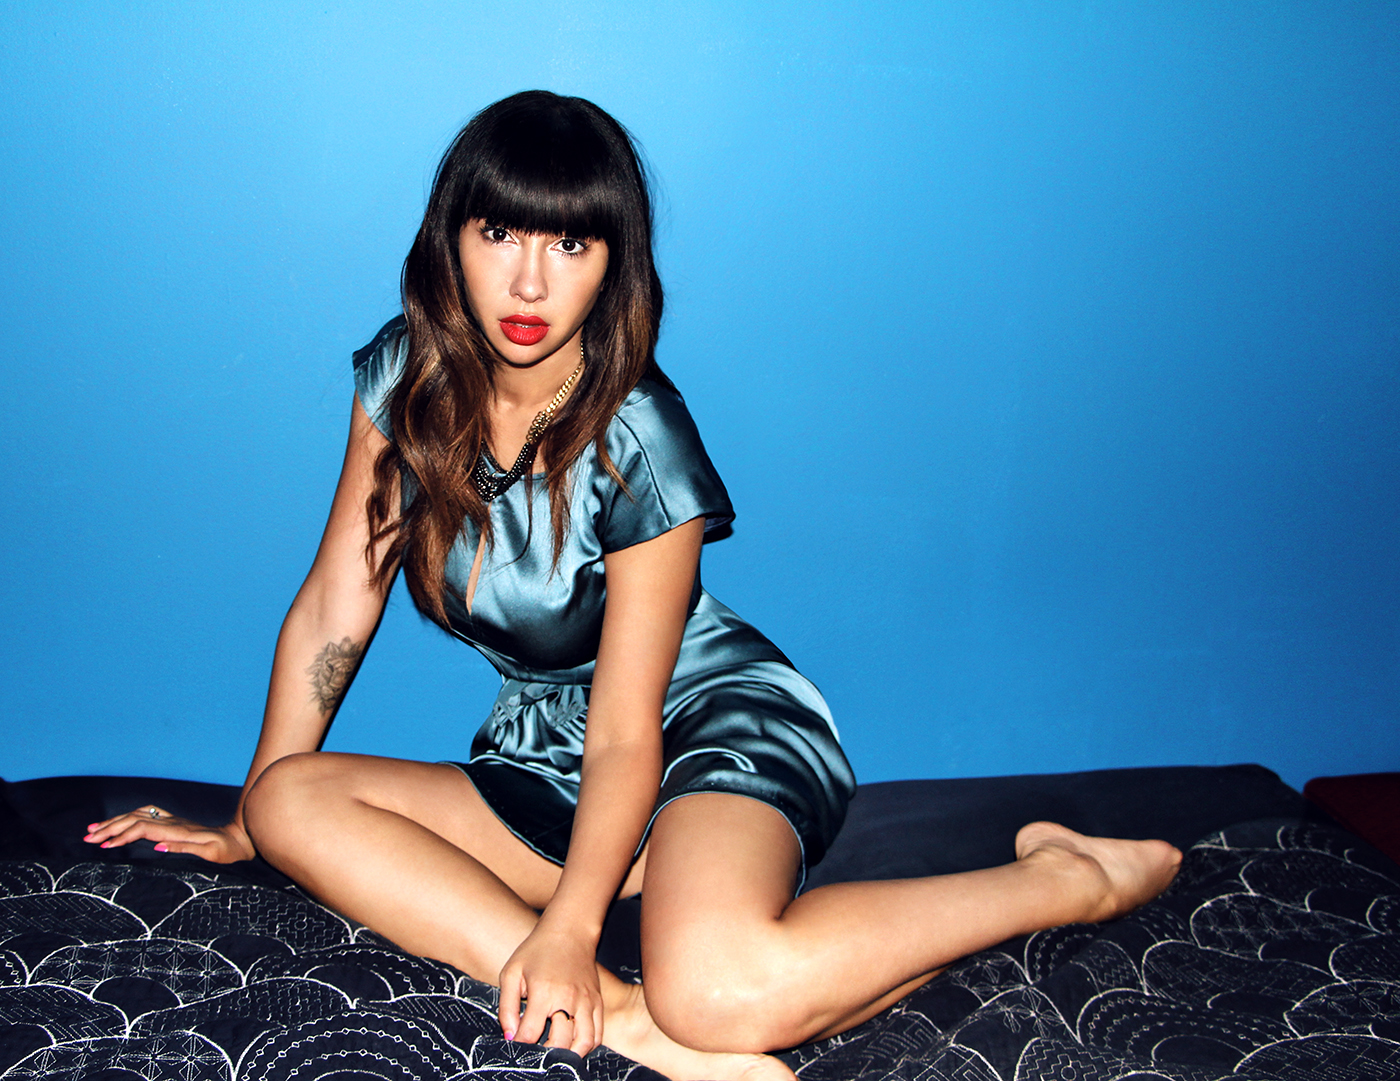 jackie cruz orange is the new blackjackie cruz orange is the new black, jackie cruz, jackie cruz wiki, jackie cruz instagram, jackie cruz age, jackie cruz singing, jackie cruz wikipedia, jackie cruz imdb, jackie cruz interview, jackie cruz y kourtney kardashian, jackie cruz feet, jackie cruz keeping up with the kardashians